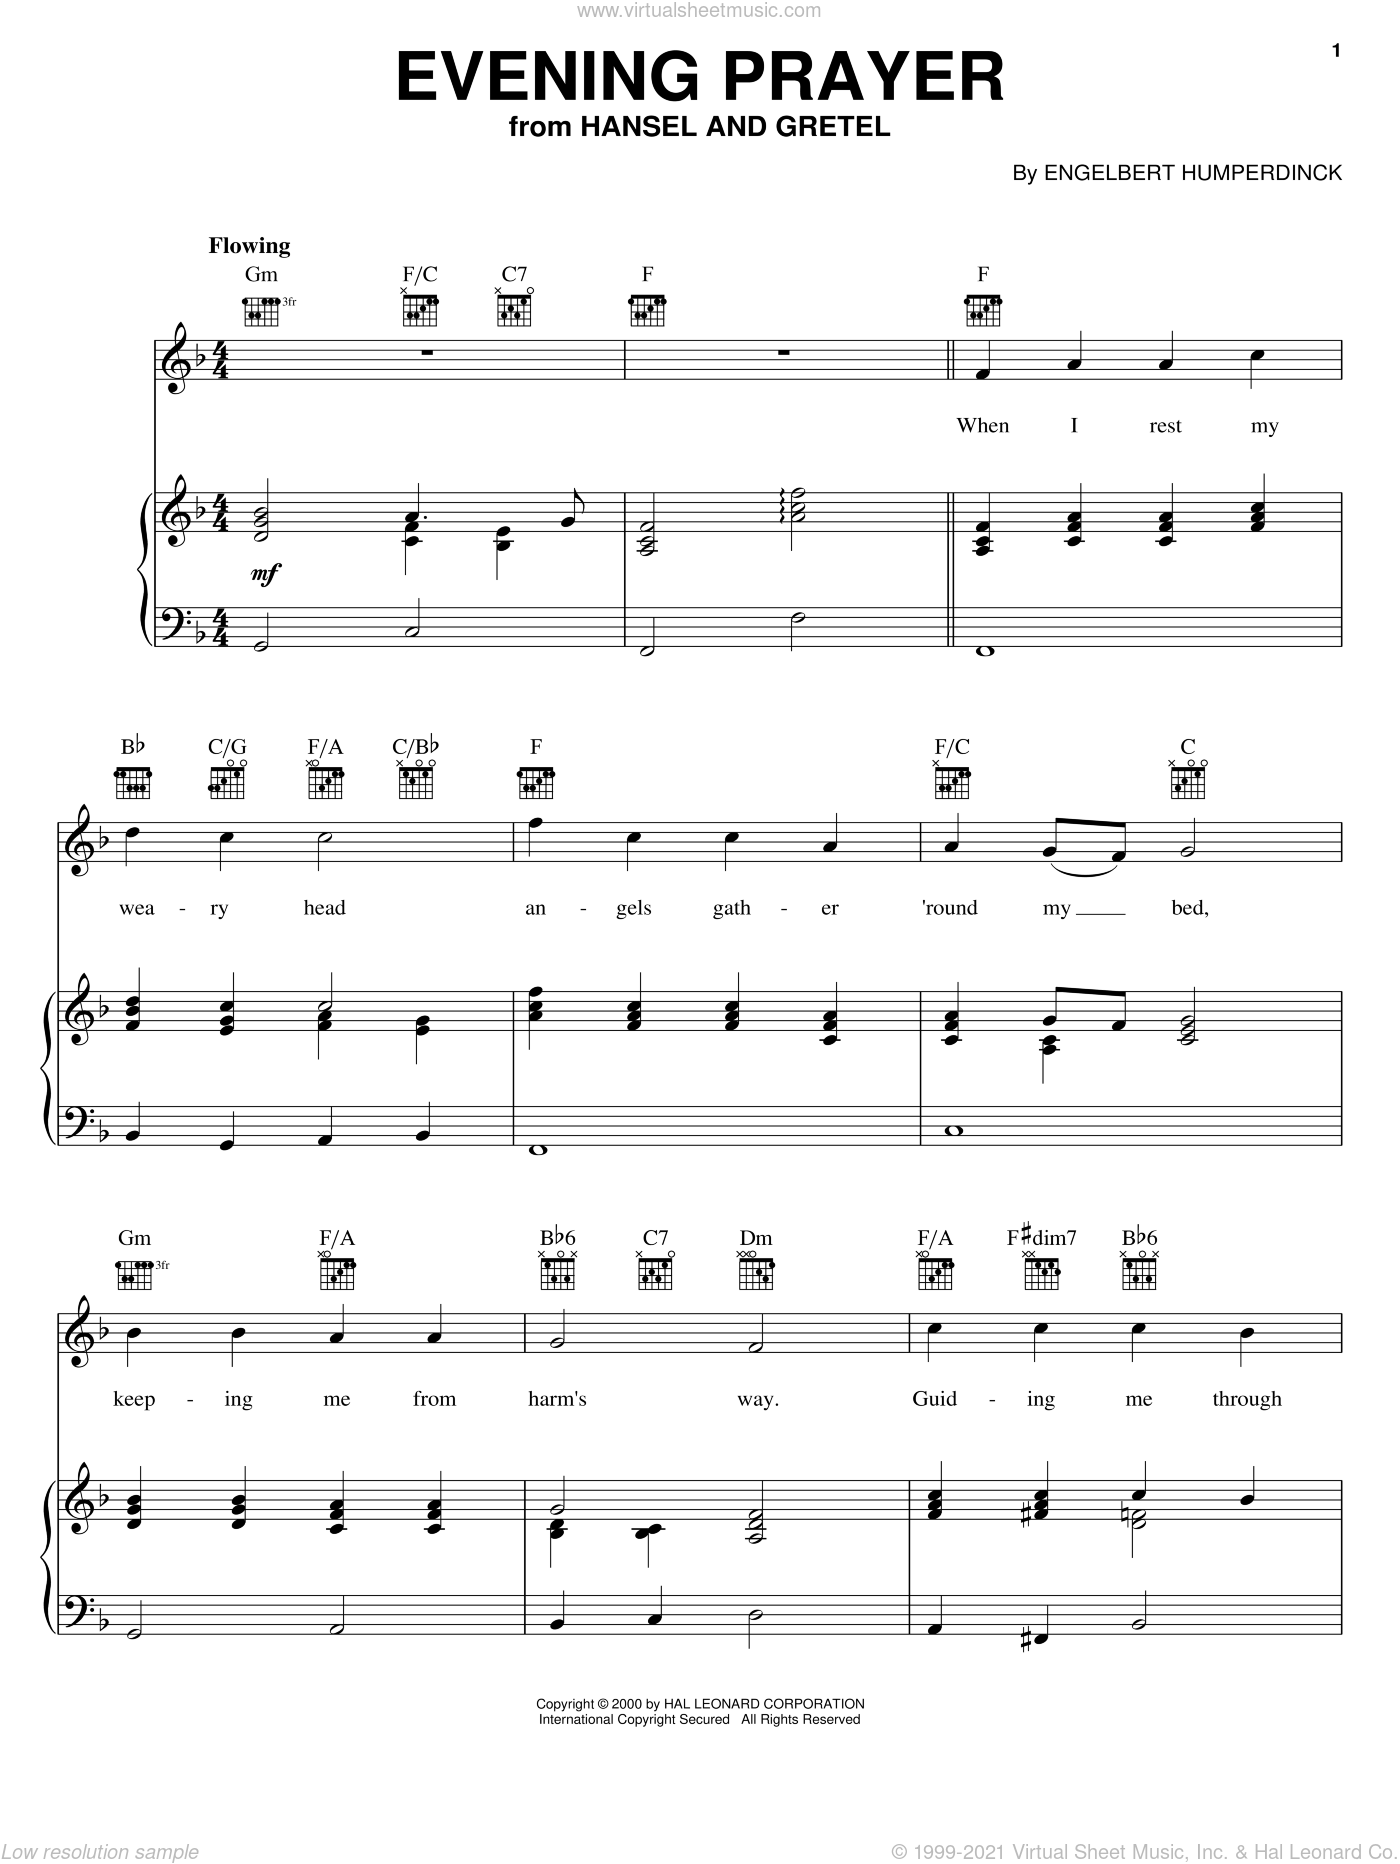 Evening Prayer sheet music for voice, piano or guitar by Engelbert Humperdinck, intermediate